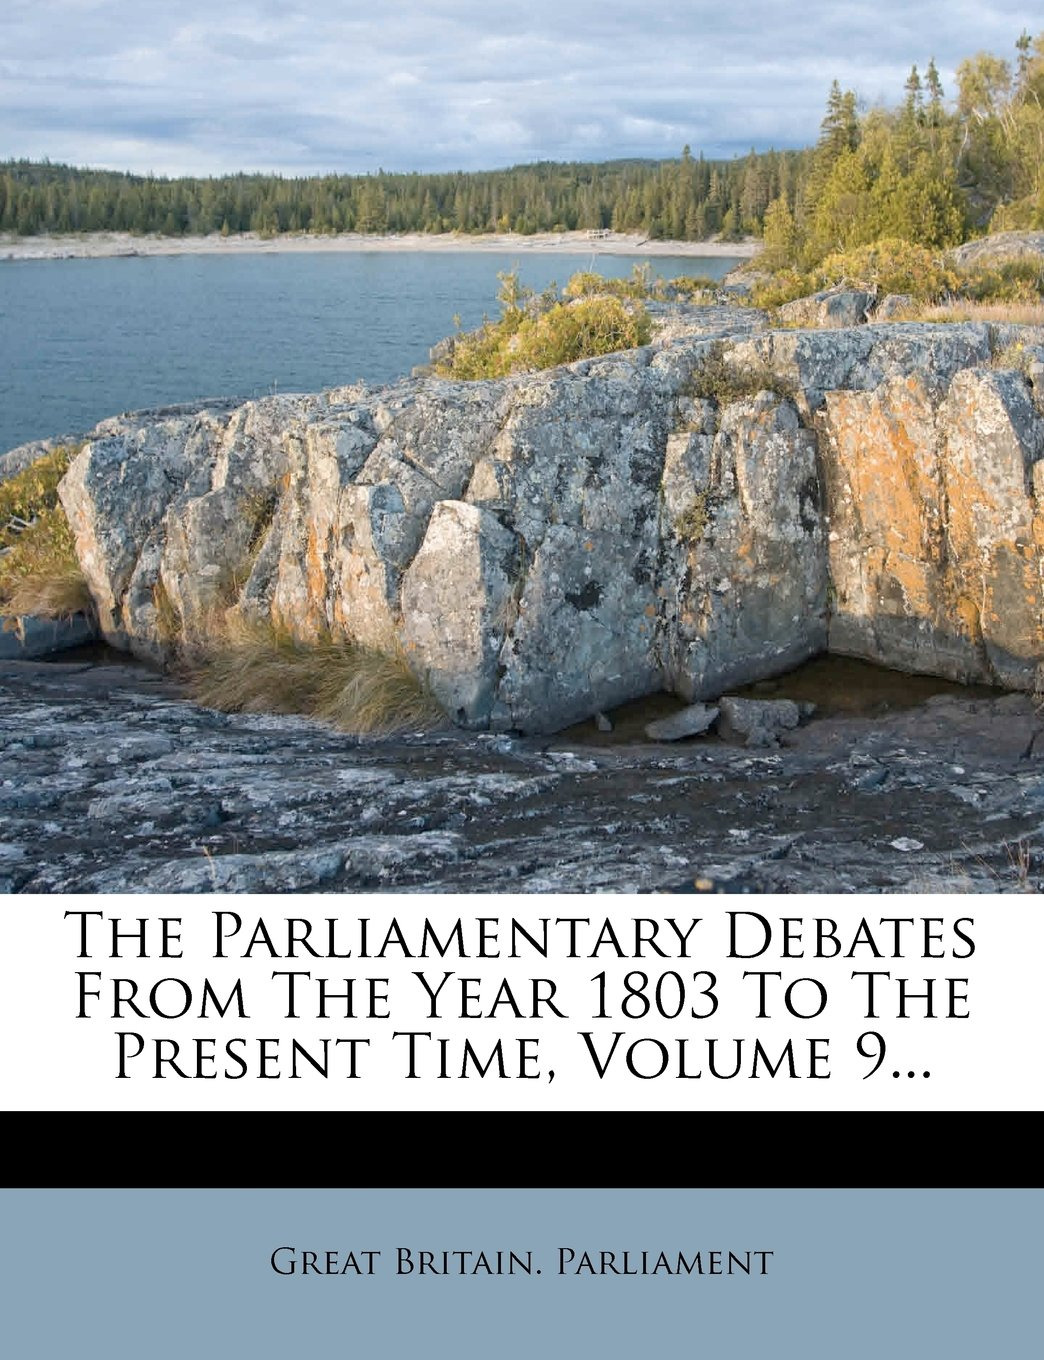 The Parliamentary Debates From The Year 1803 To The Present Time, Volume 9... PDF